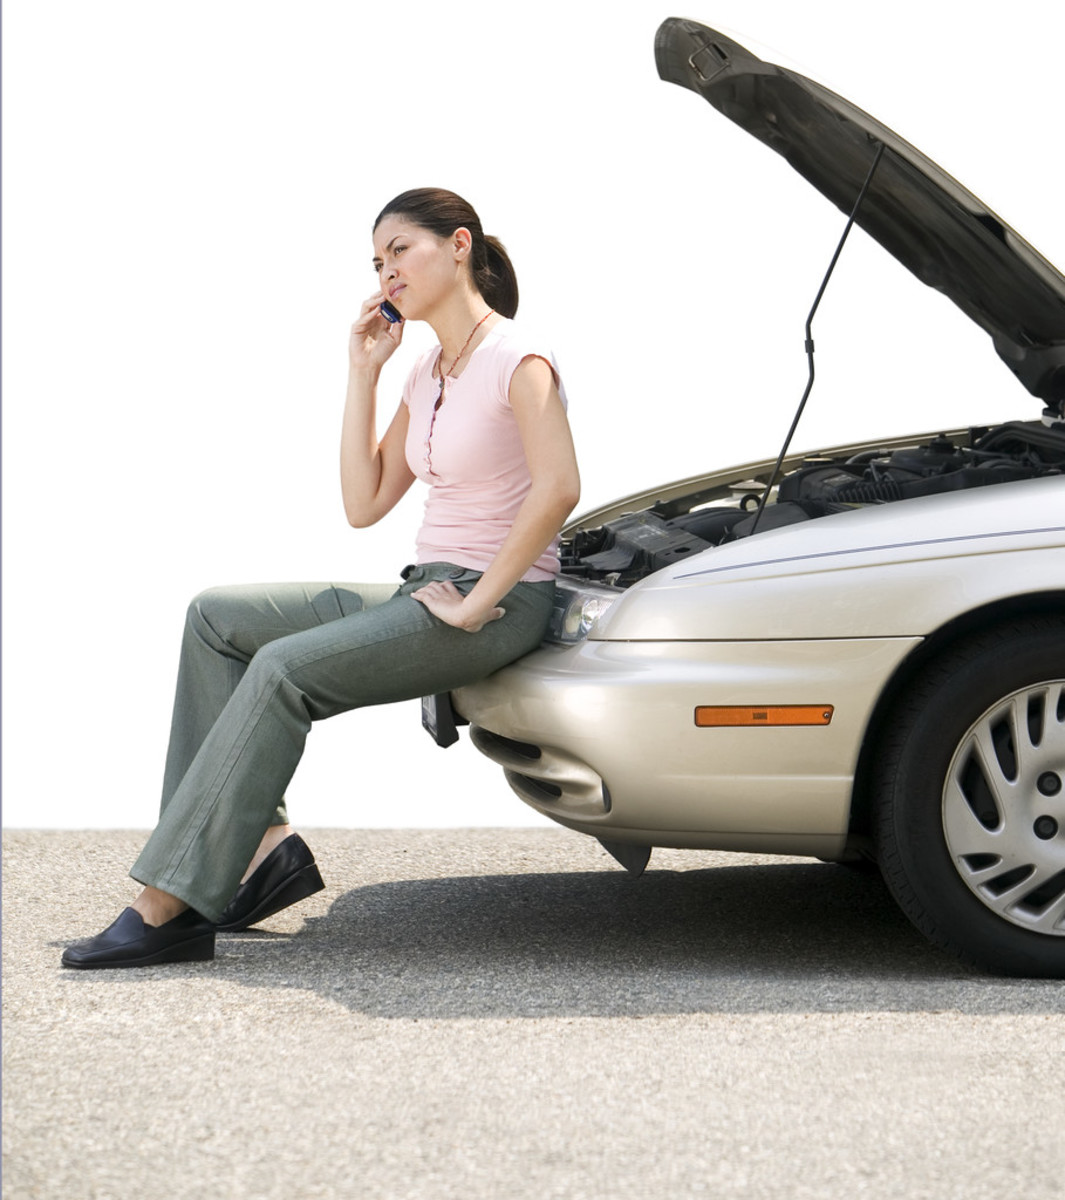 Are Women Charged More for Car Repairs? 6 Tips to Protect Women at the Mechanic